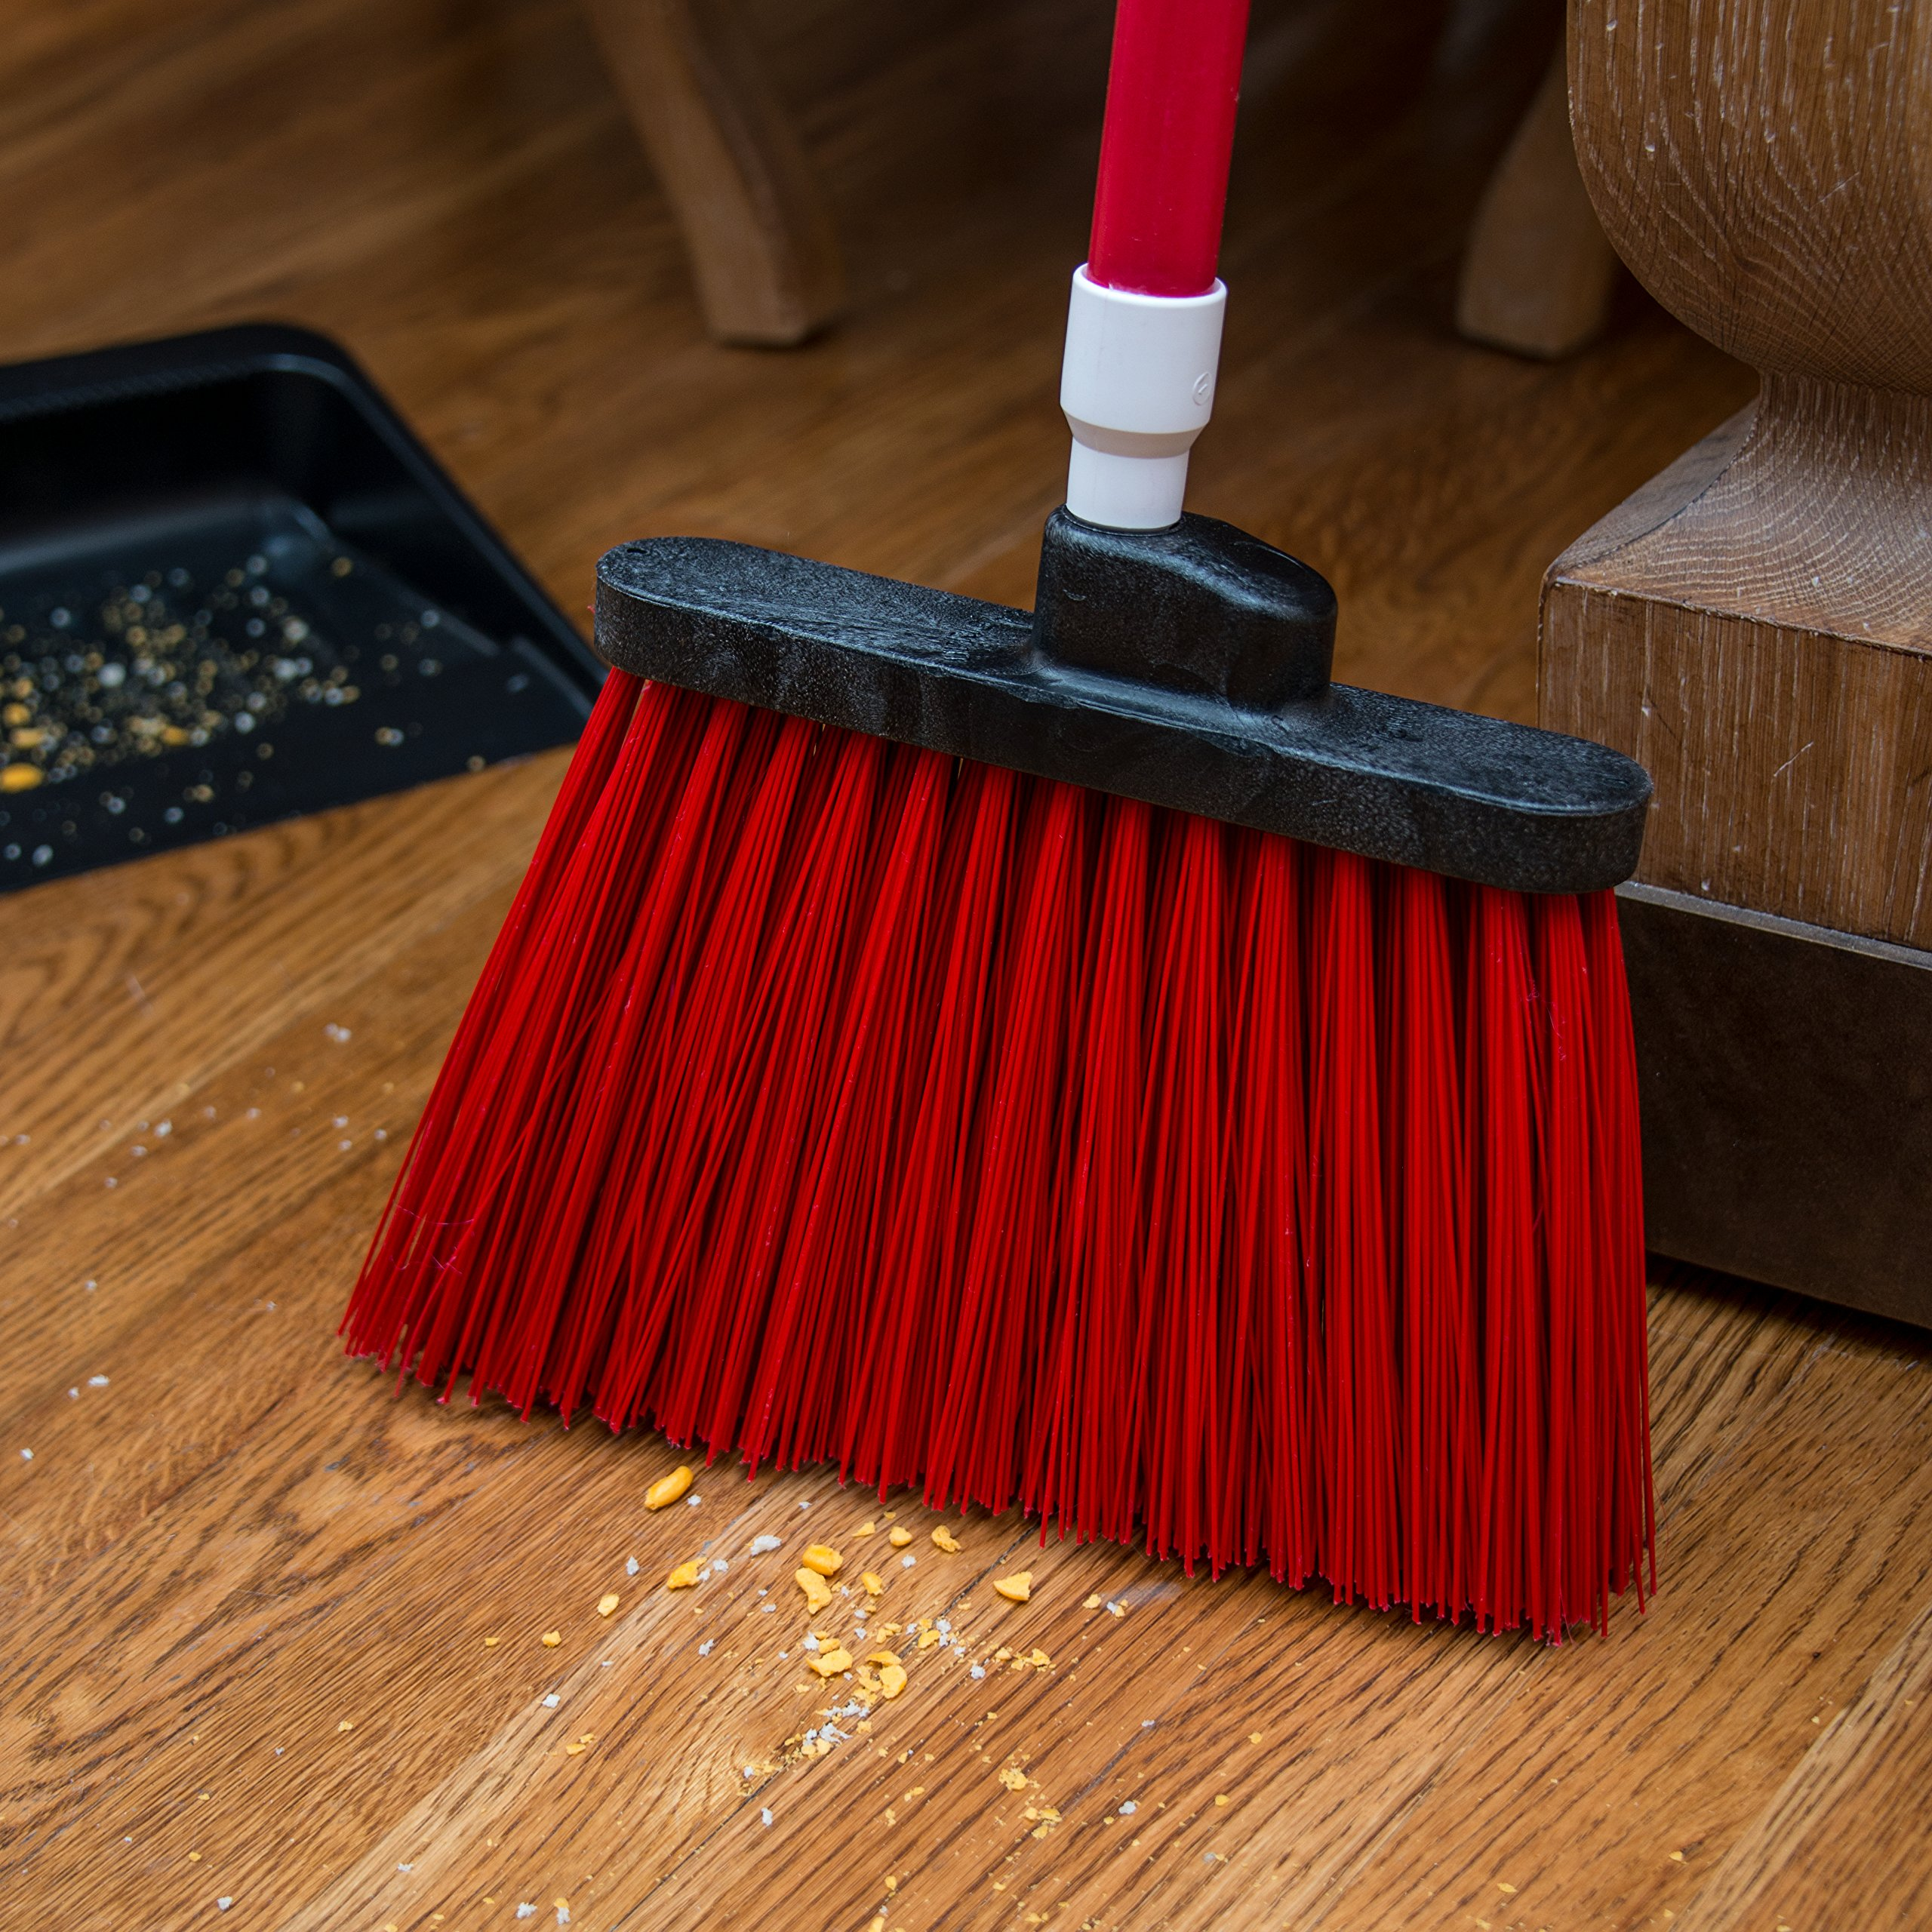 Carlisle 4108305 Sparta Duo-Sweep Unflagged Angle Broom with Fiberglass Handle, 54'' Length, Red (Pack of 12) by Carlisle (Image #6)